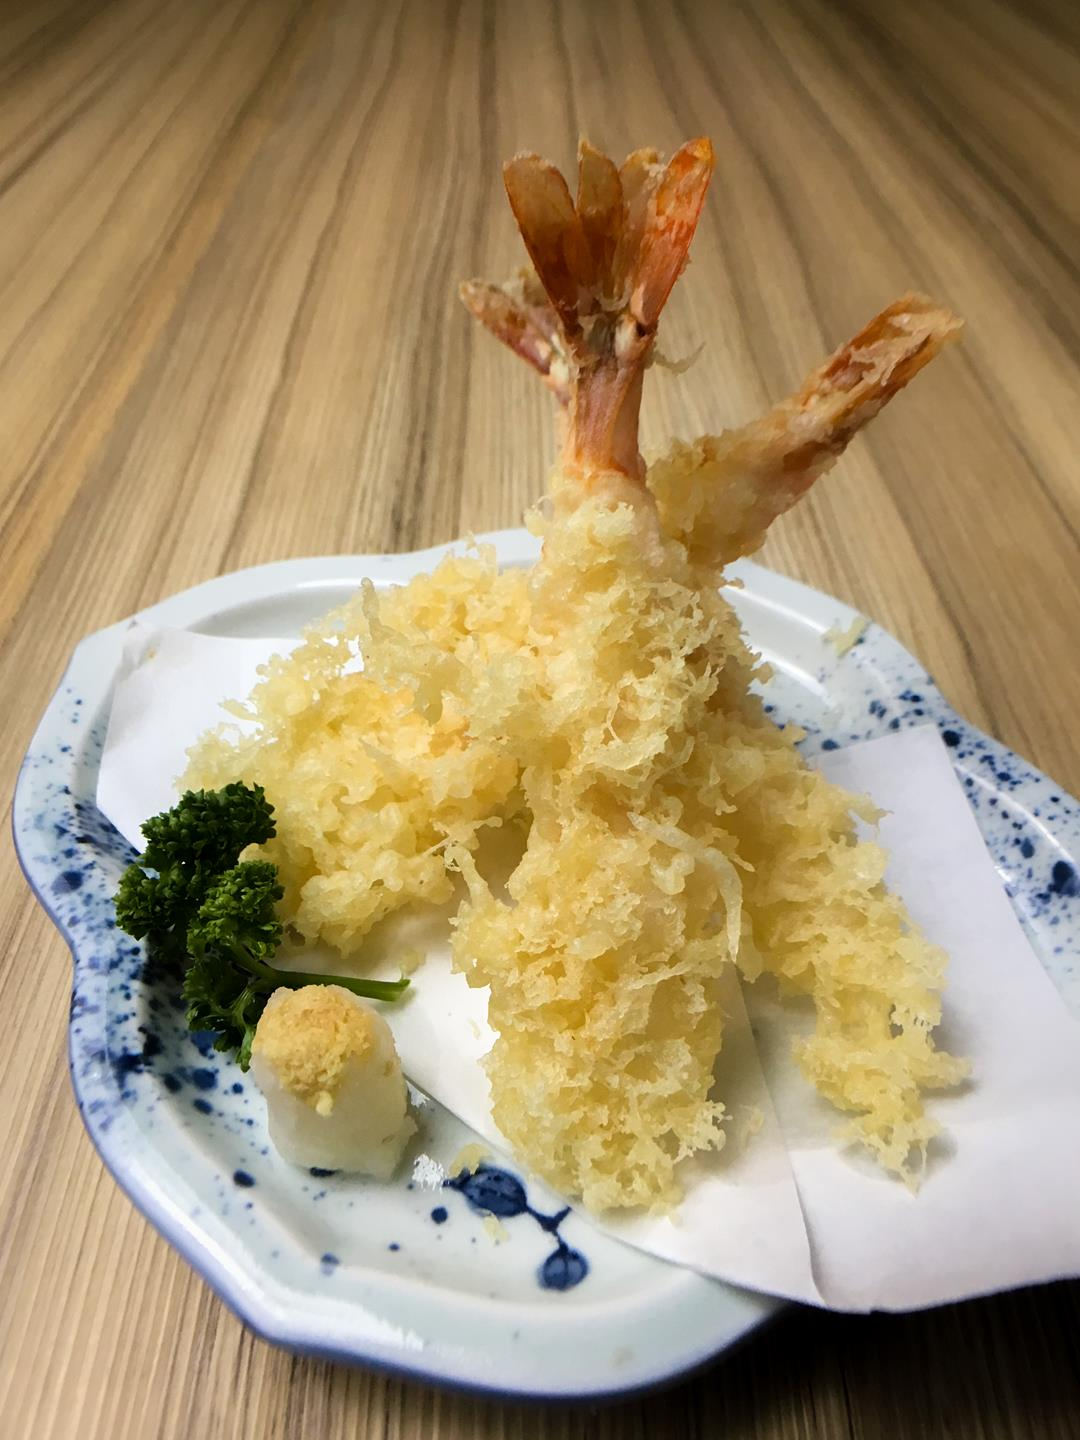 Ebi (shrimp)tempura has remained an all-time favorite amongst Filipino diners.